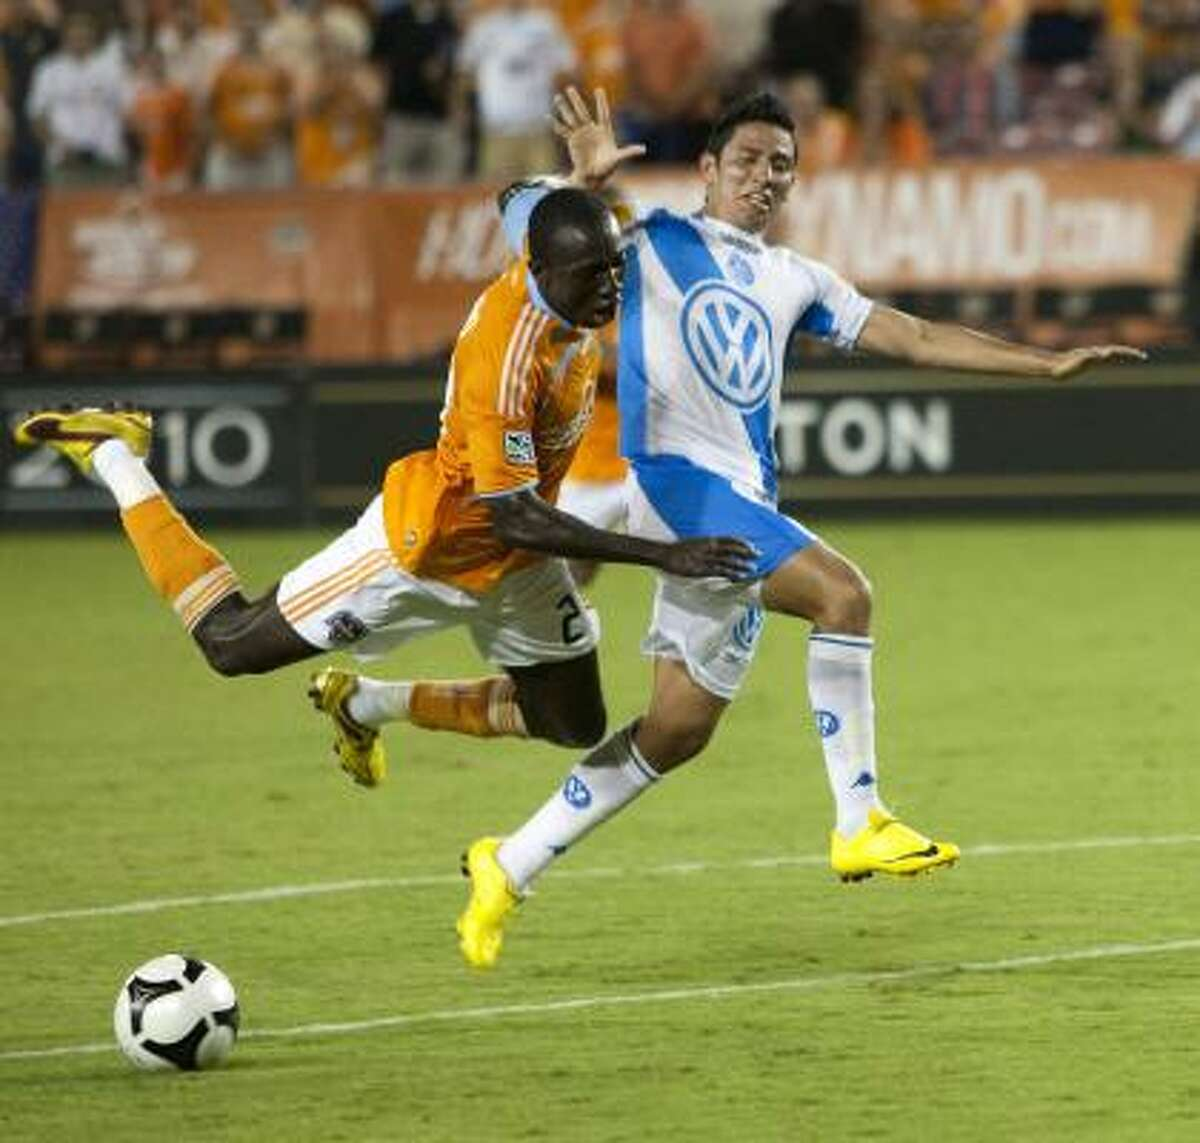 Dynamo midfielder Dominic Oduro, left, collides with Puebla defender Orlando Rincon as Oduro wins on a breakaway to the goal during the second half. Orduro was given a red card on the play and ejected from the game.